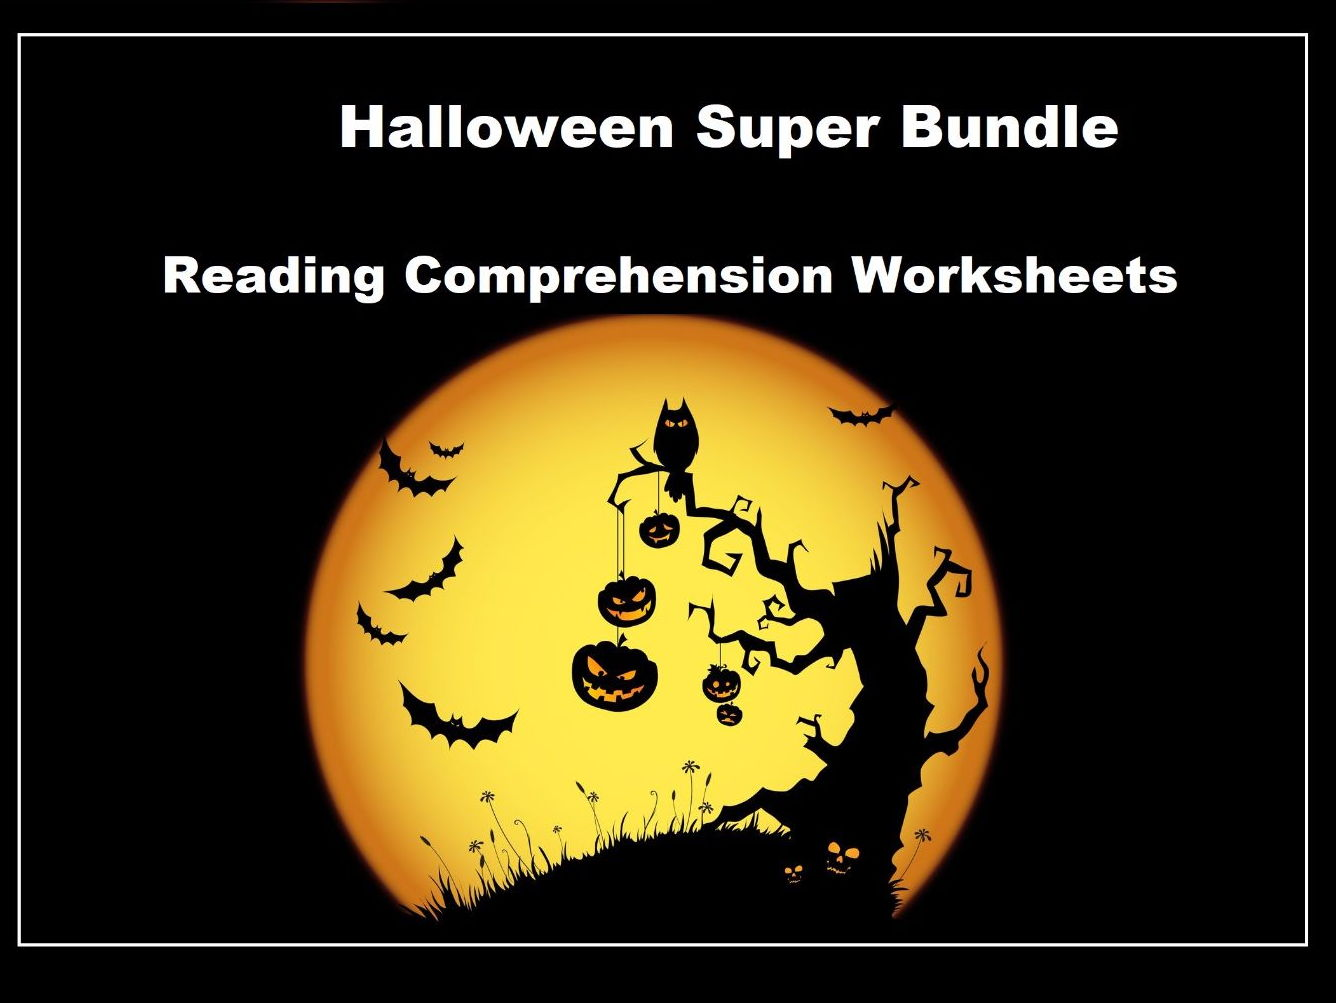 Halloween Reading Comprehension Worksheets